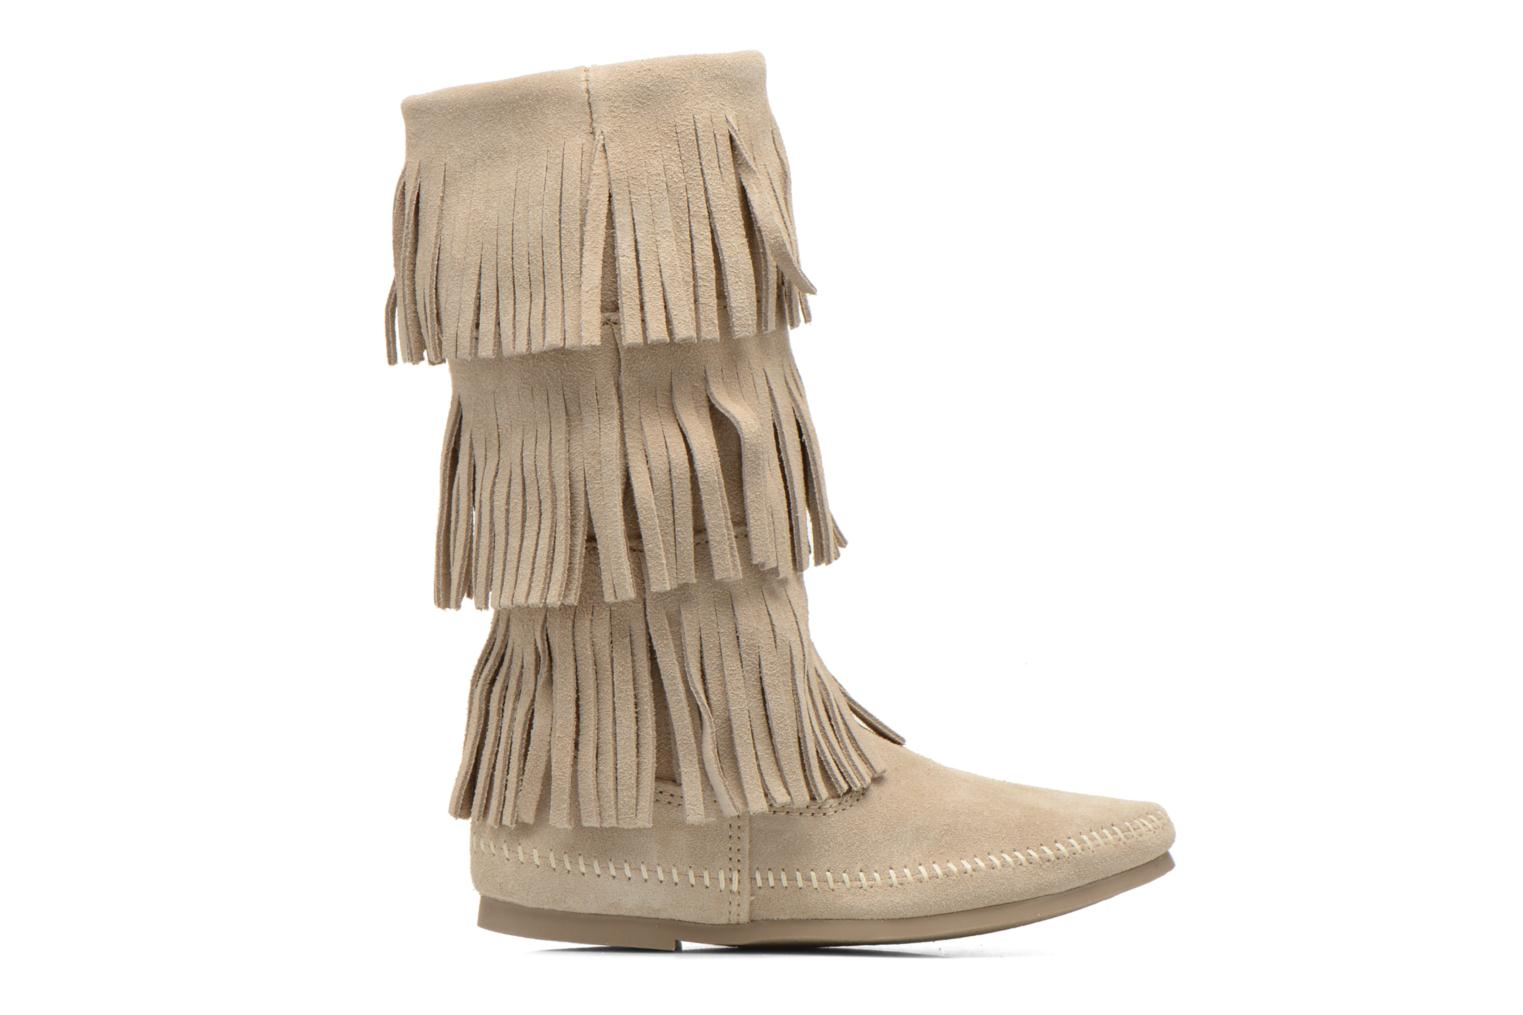 3 LAYER FRINGE BOOT stone suede